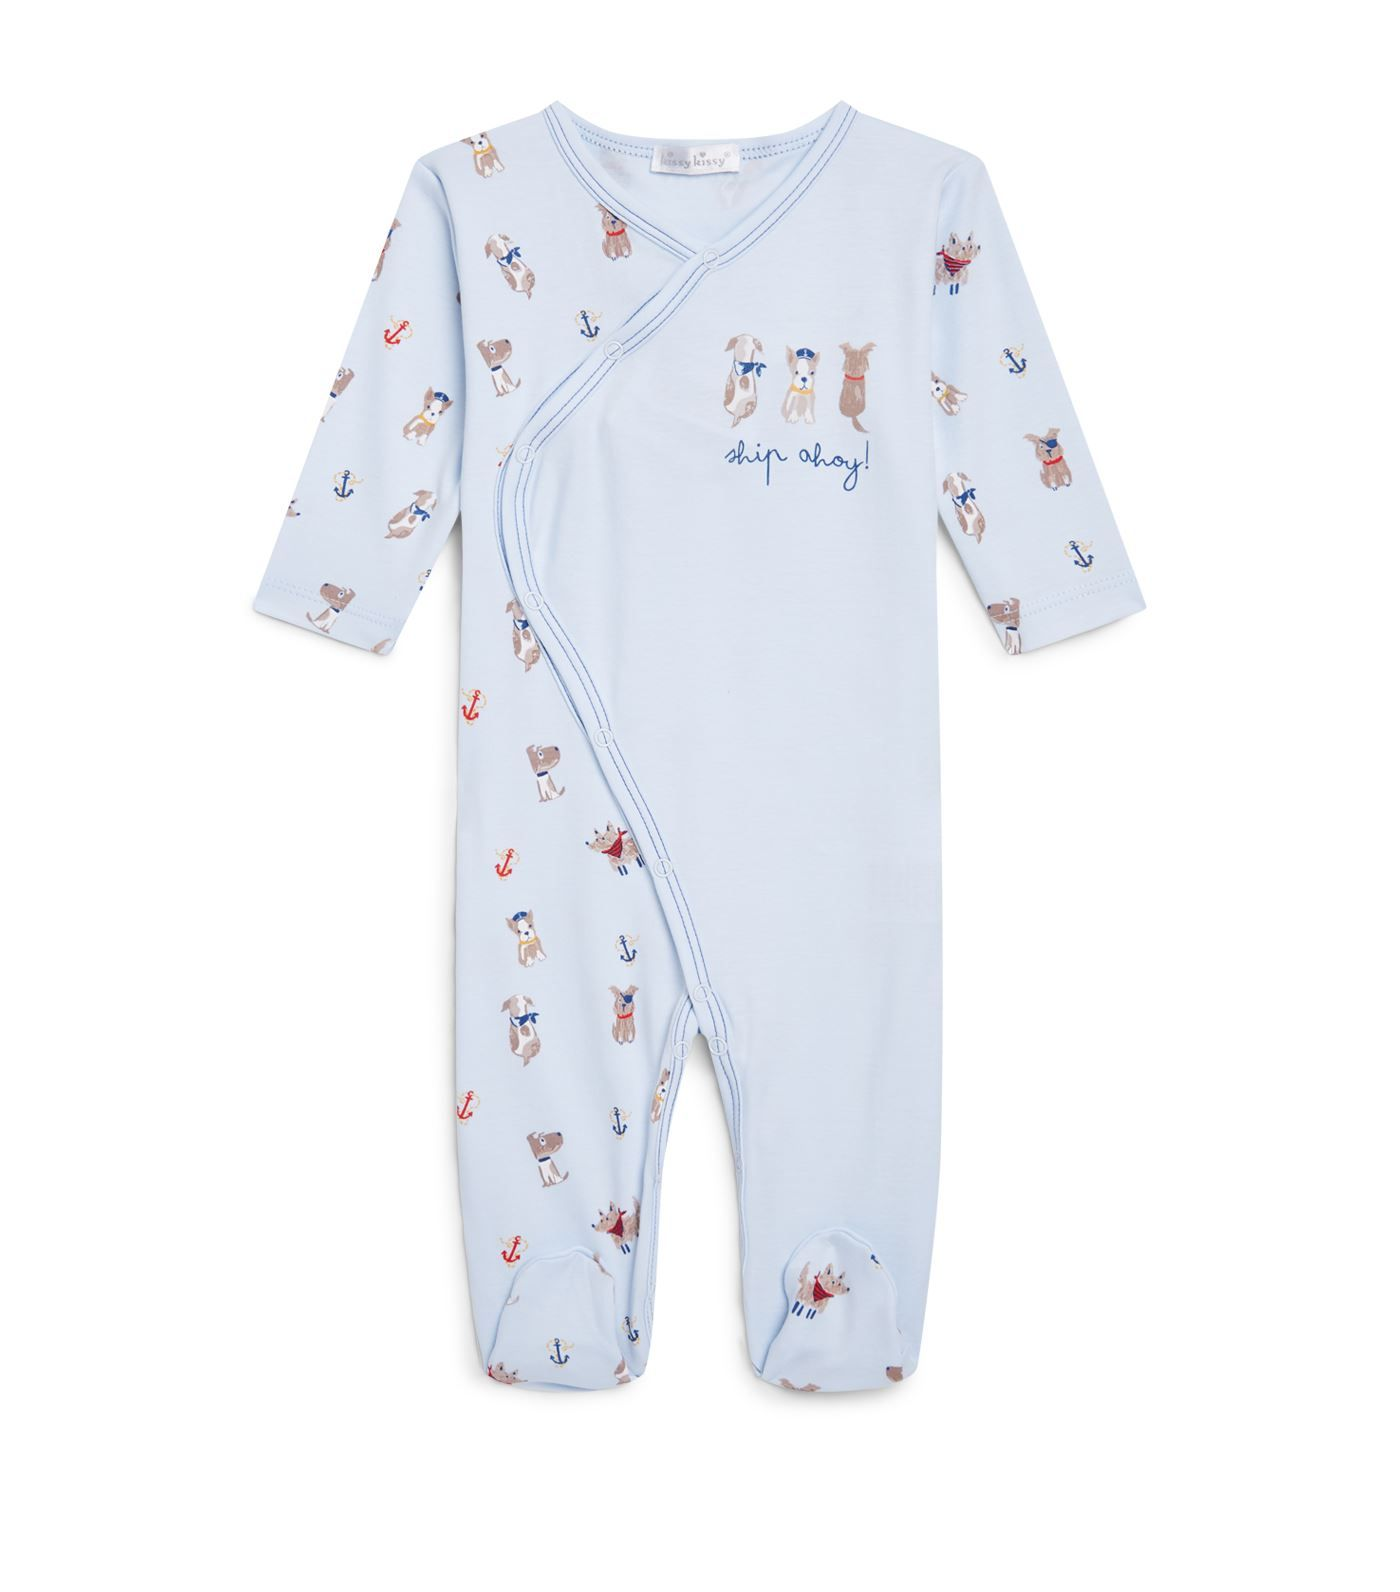 Kissy Kissy Baby-Boys Infant Salty Dogs Print Short Playsuit with Collar